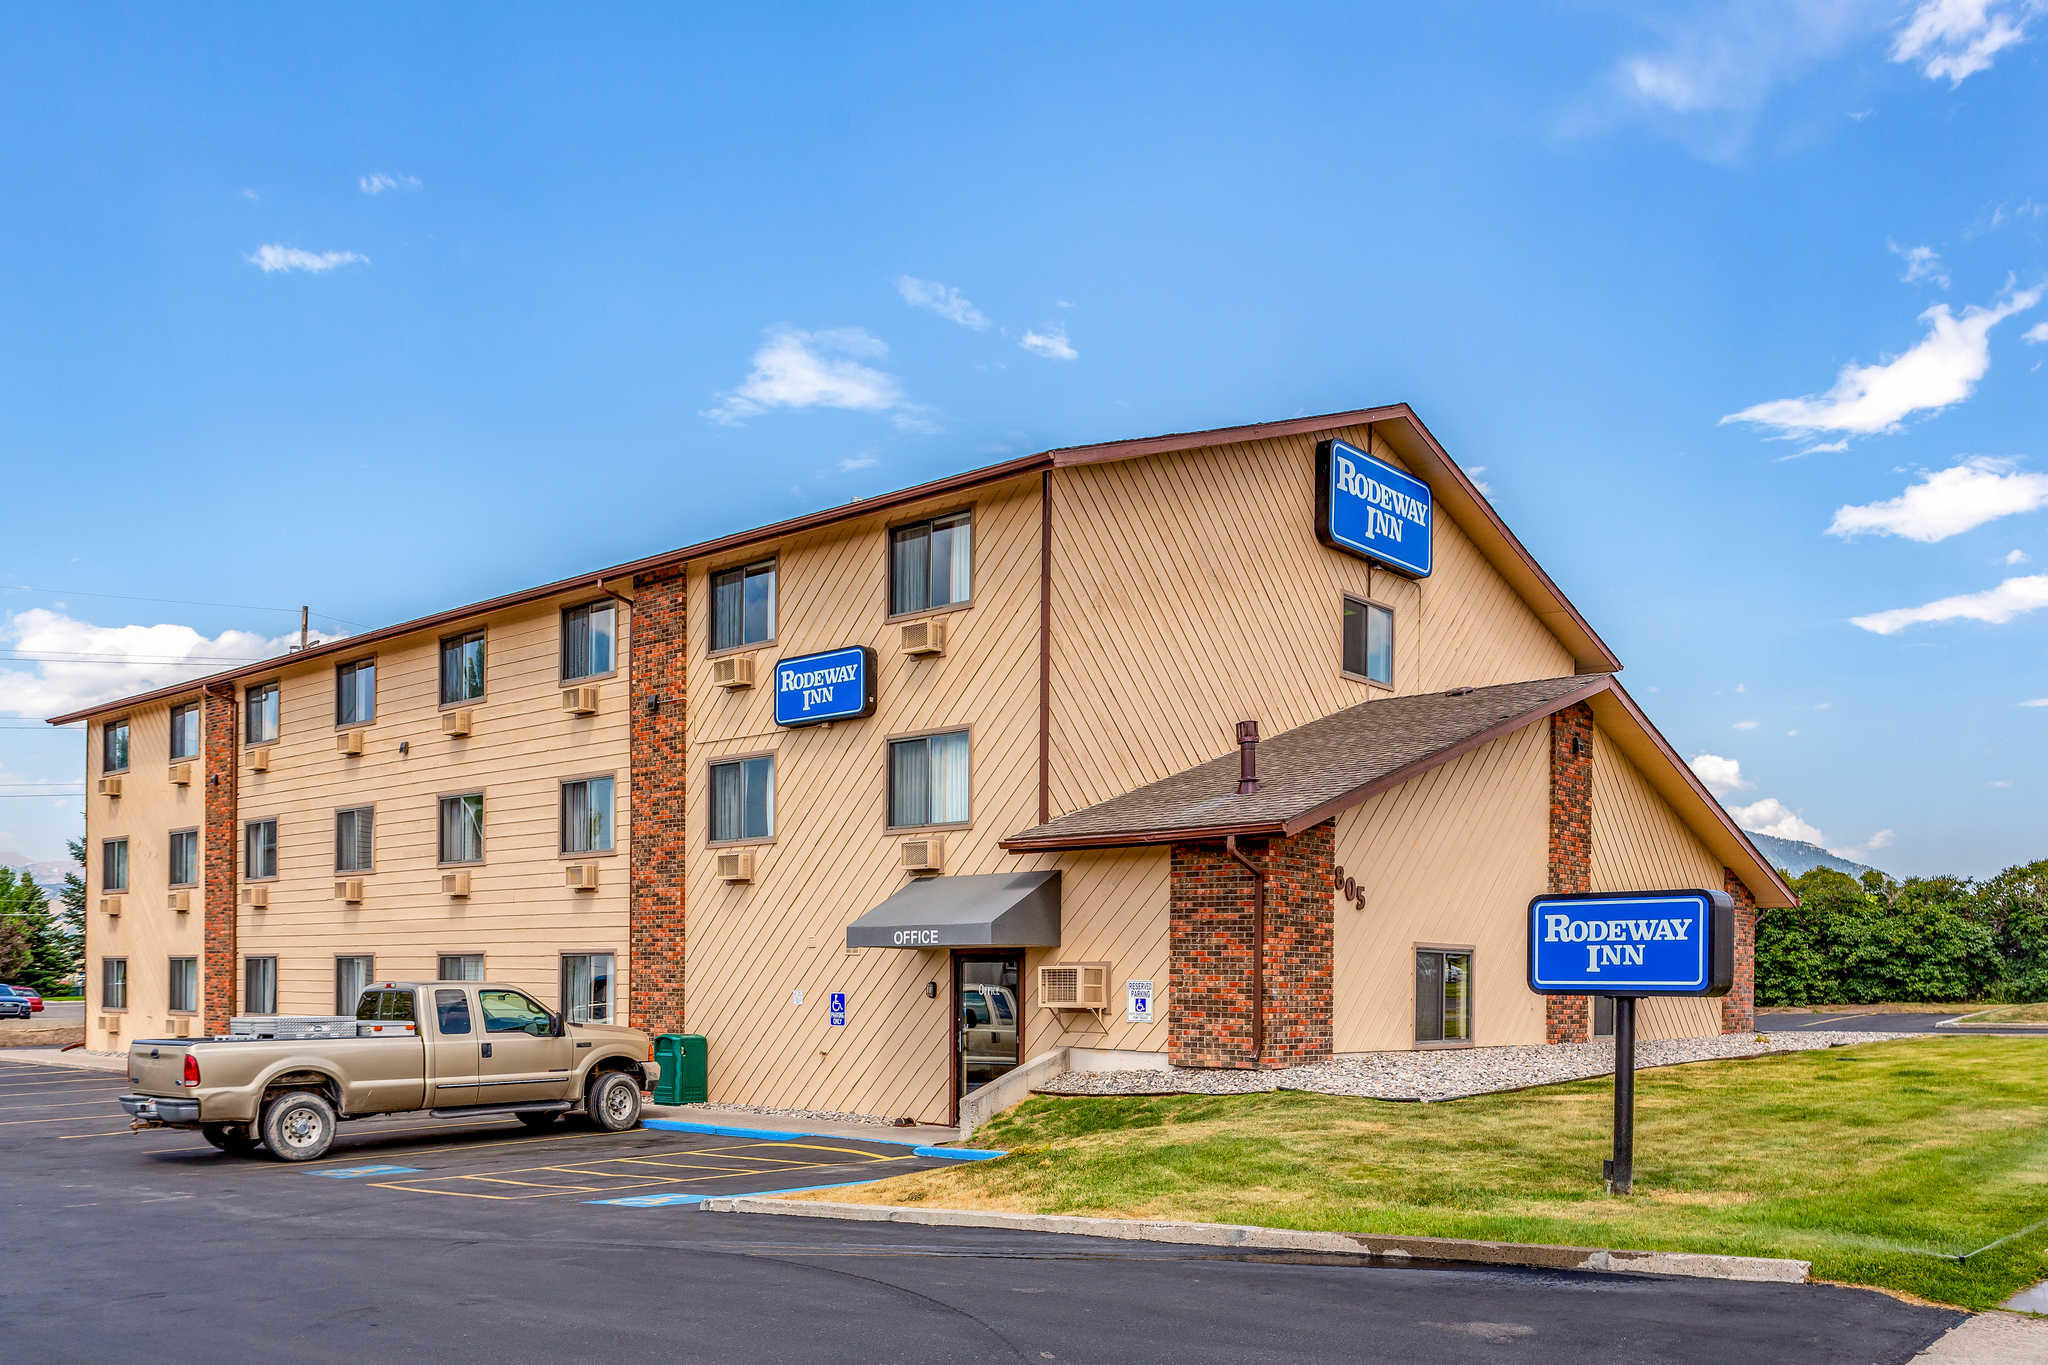 rodeway inn in bozeman mt hotels motels yellow pages. Black Bedroom Furniture Sets. Home Design Ideas